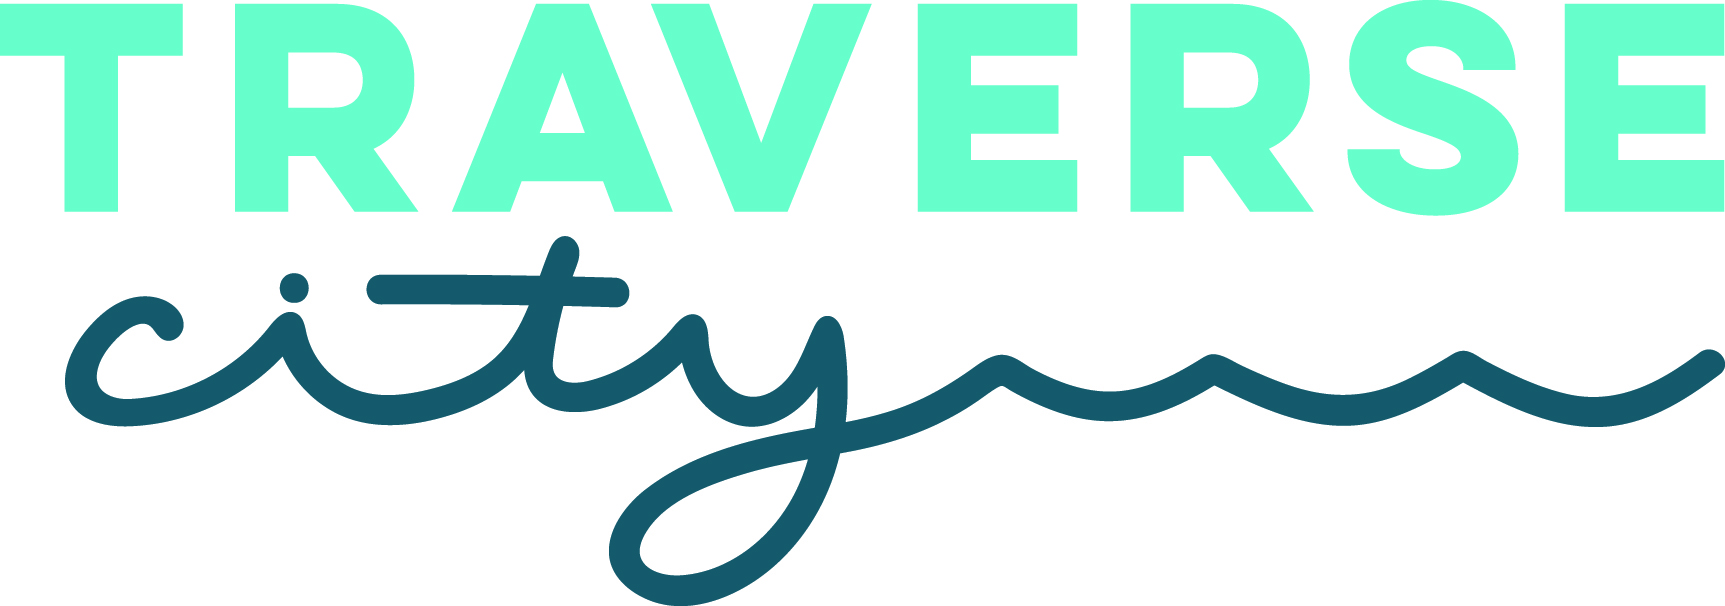 TraverseCity-Logo-Stacked-CMYK.jpg